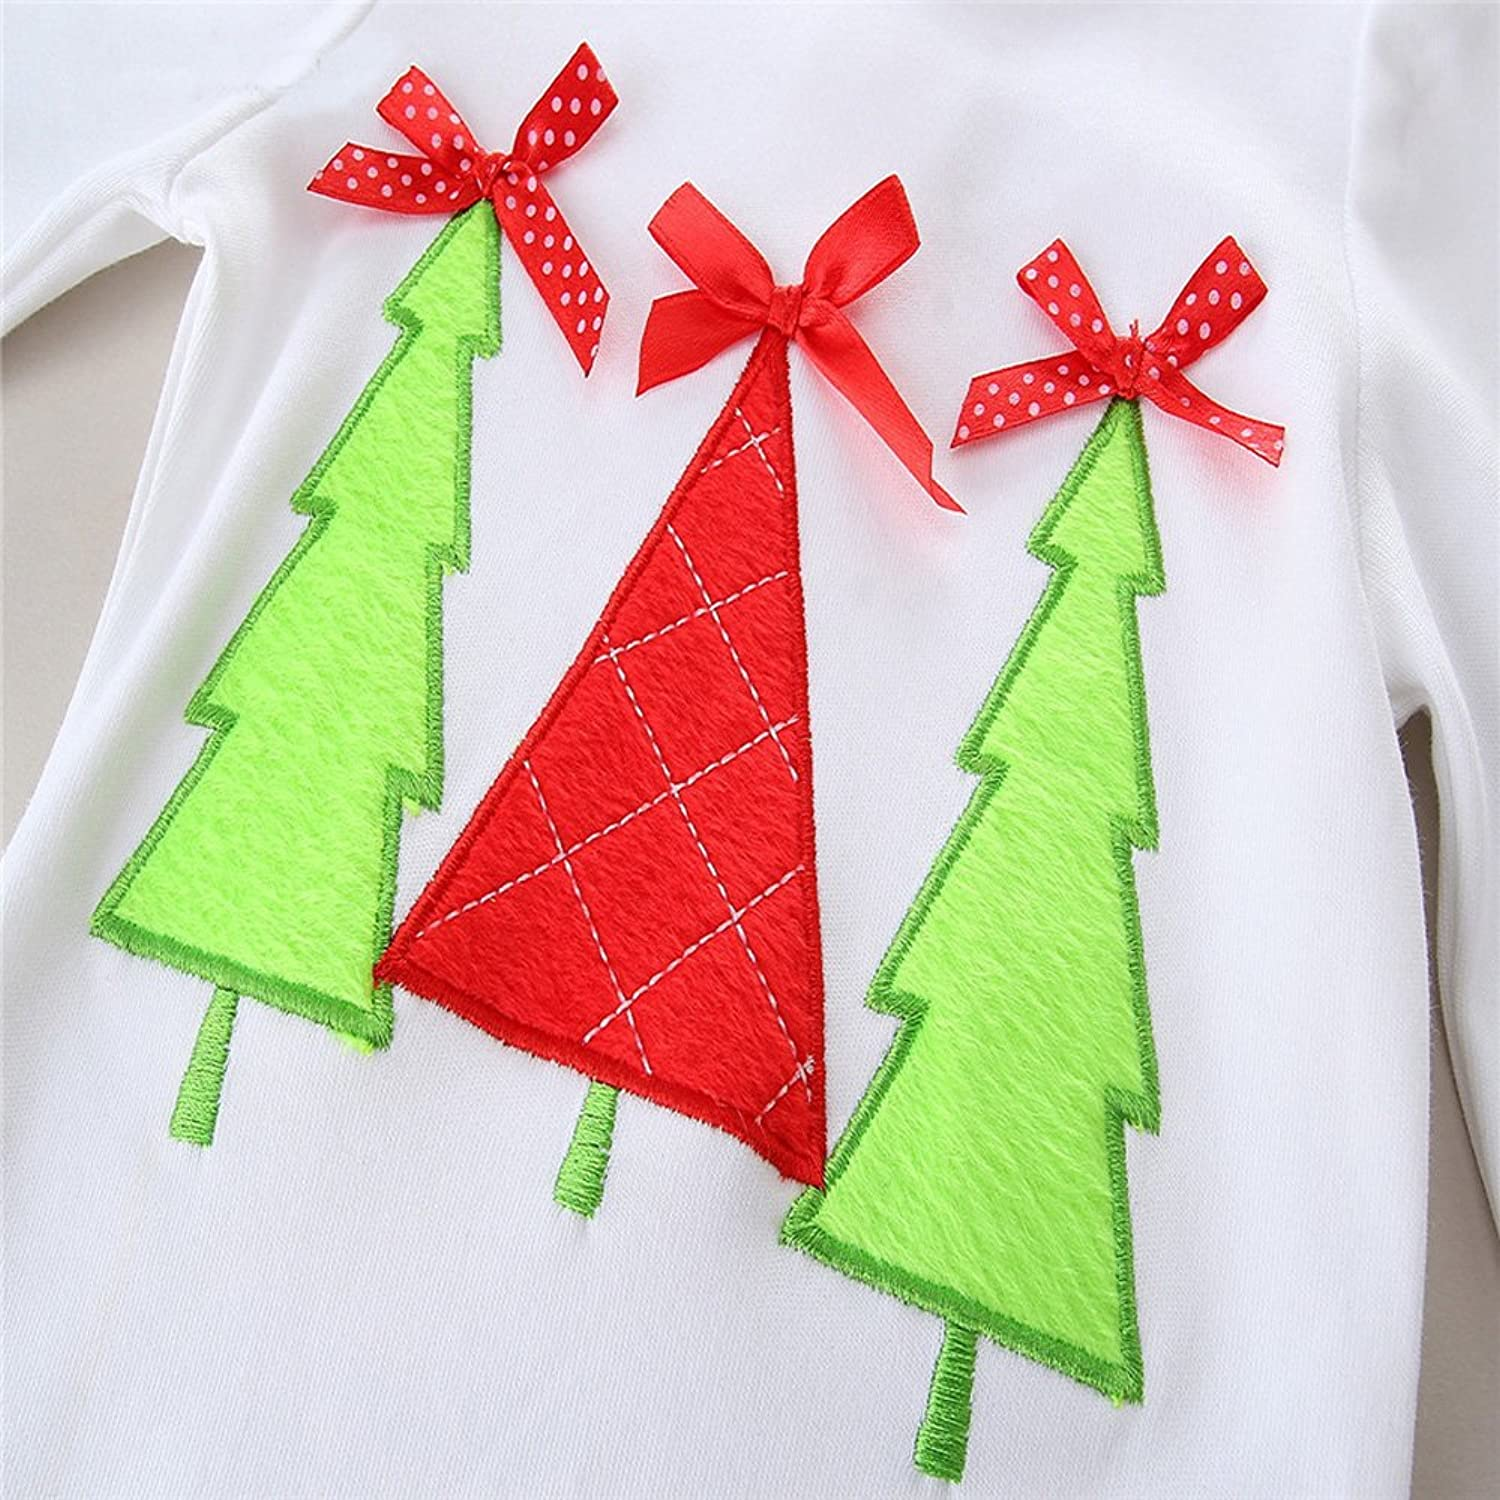 Amazon.com: TinaLuLing Cotton Christmas Girls Clothing Sets Baby Boutique Outfits: Clothing